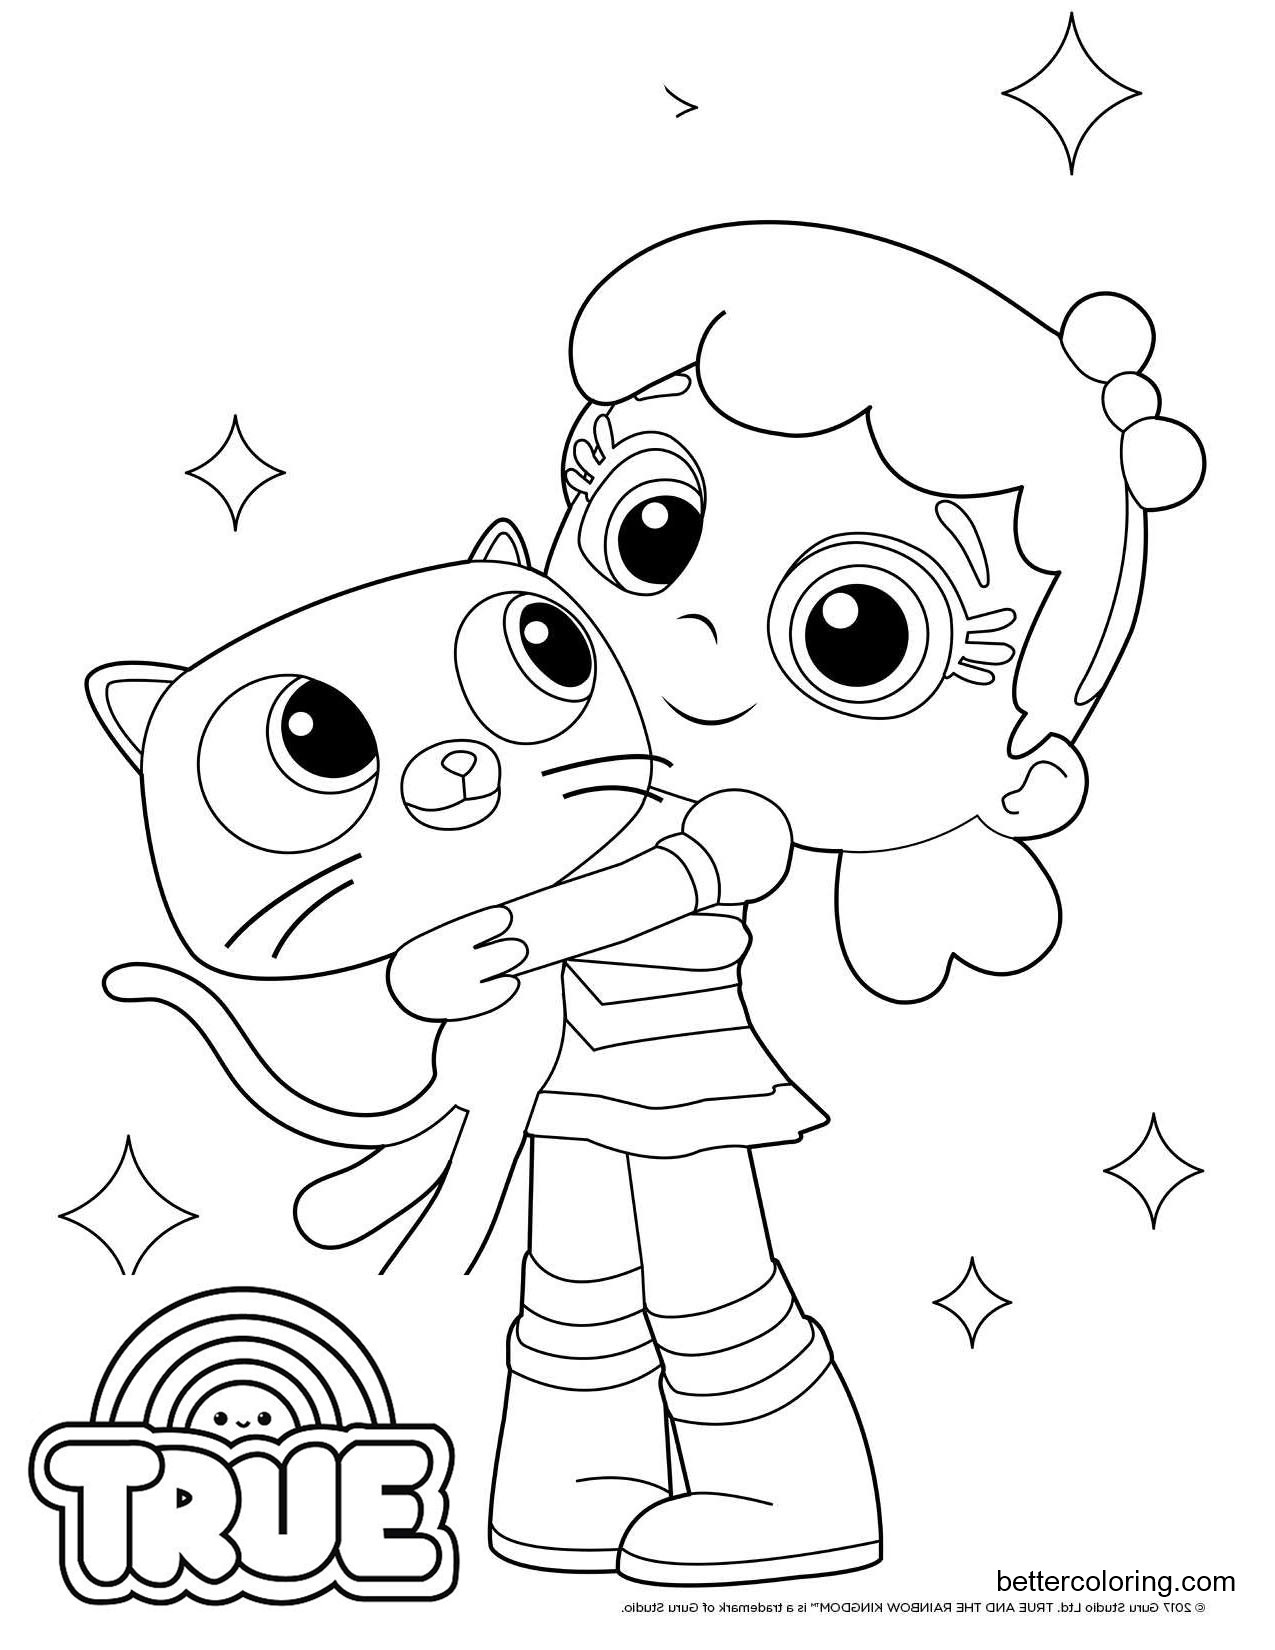 Free True and the Rainbow Kingdom Coloring Pages True and Bartleby Line Drawing printable